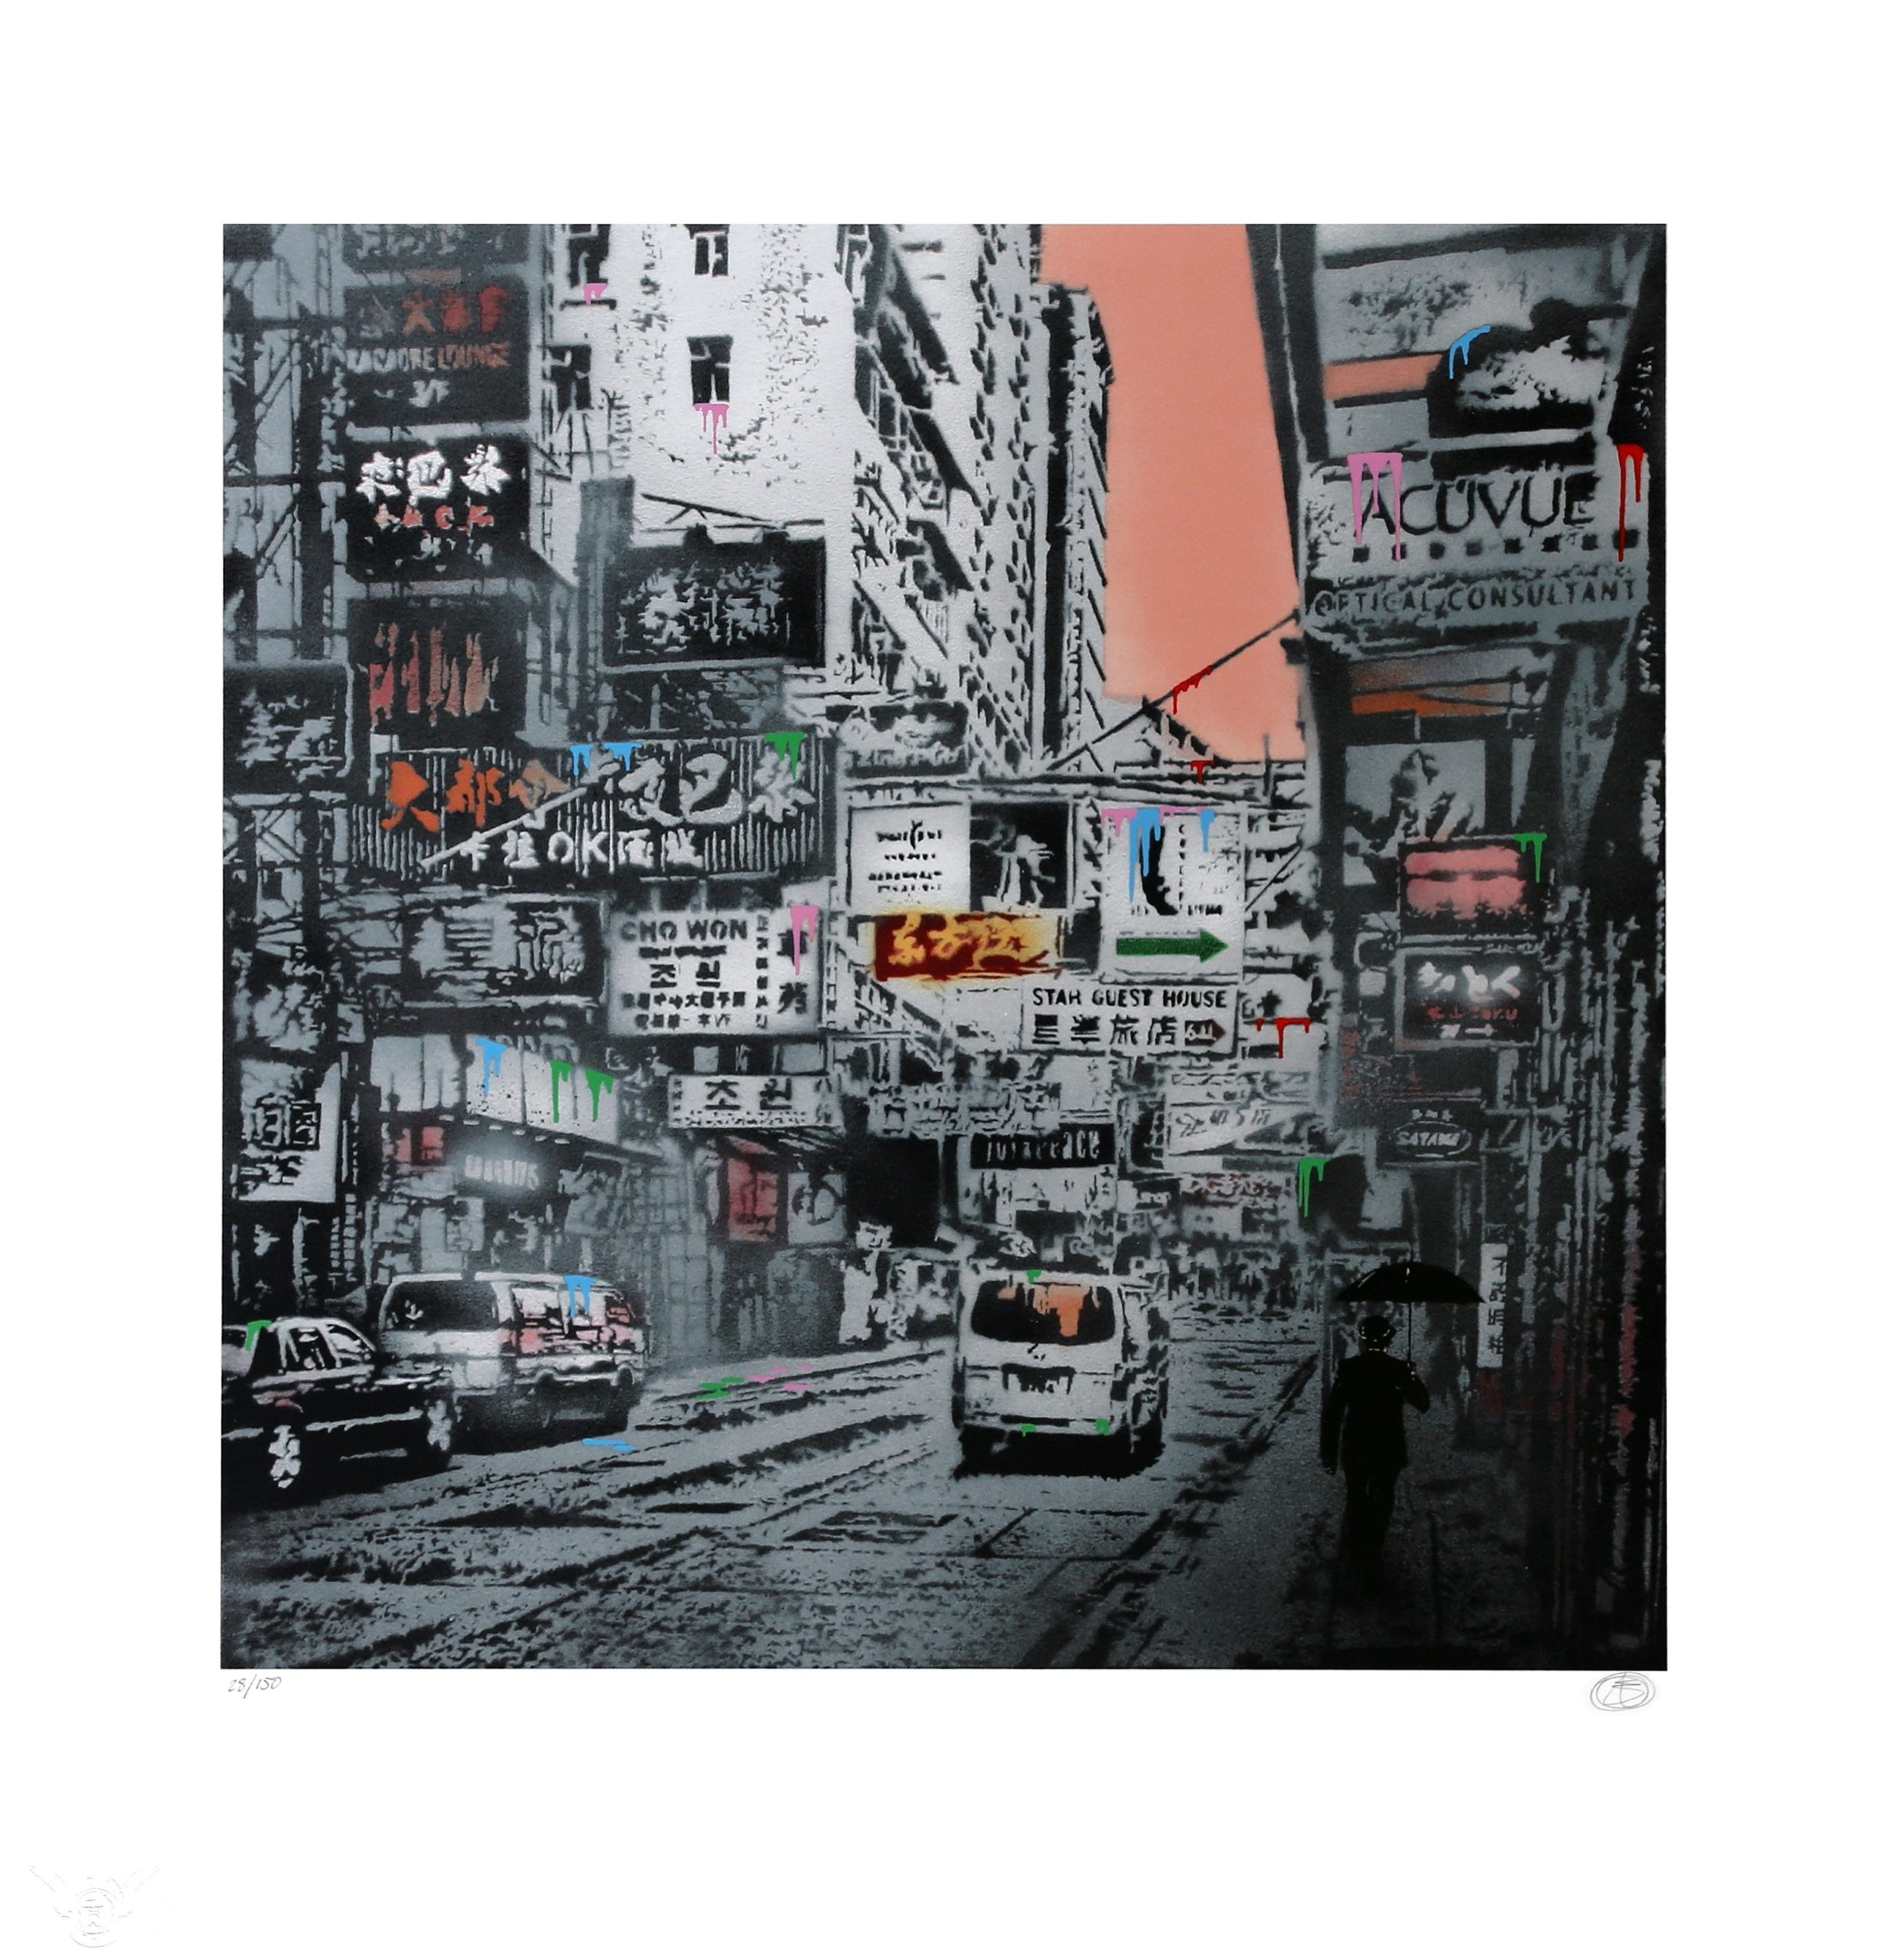 Basking In The Glory (tma – Hong Kong Street Scene #1) by Nick Walker